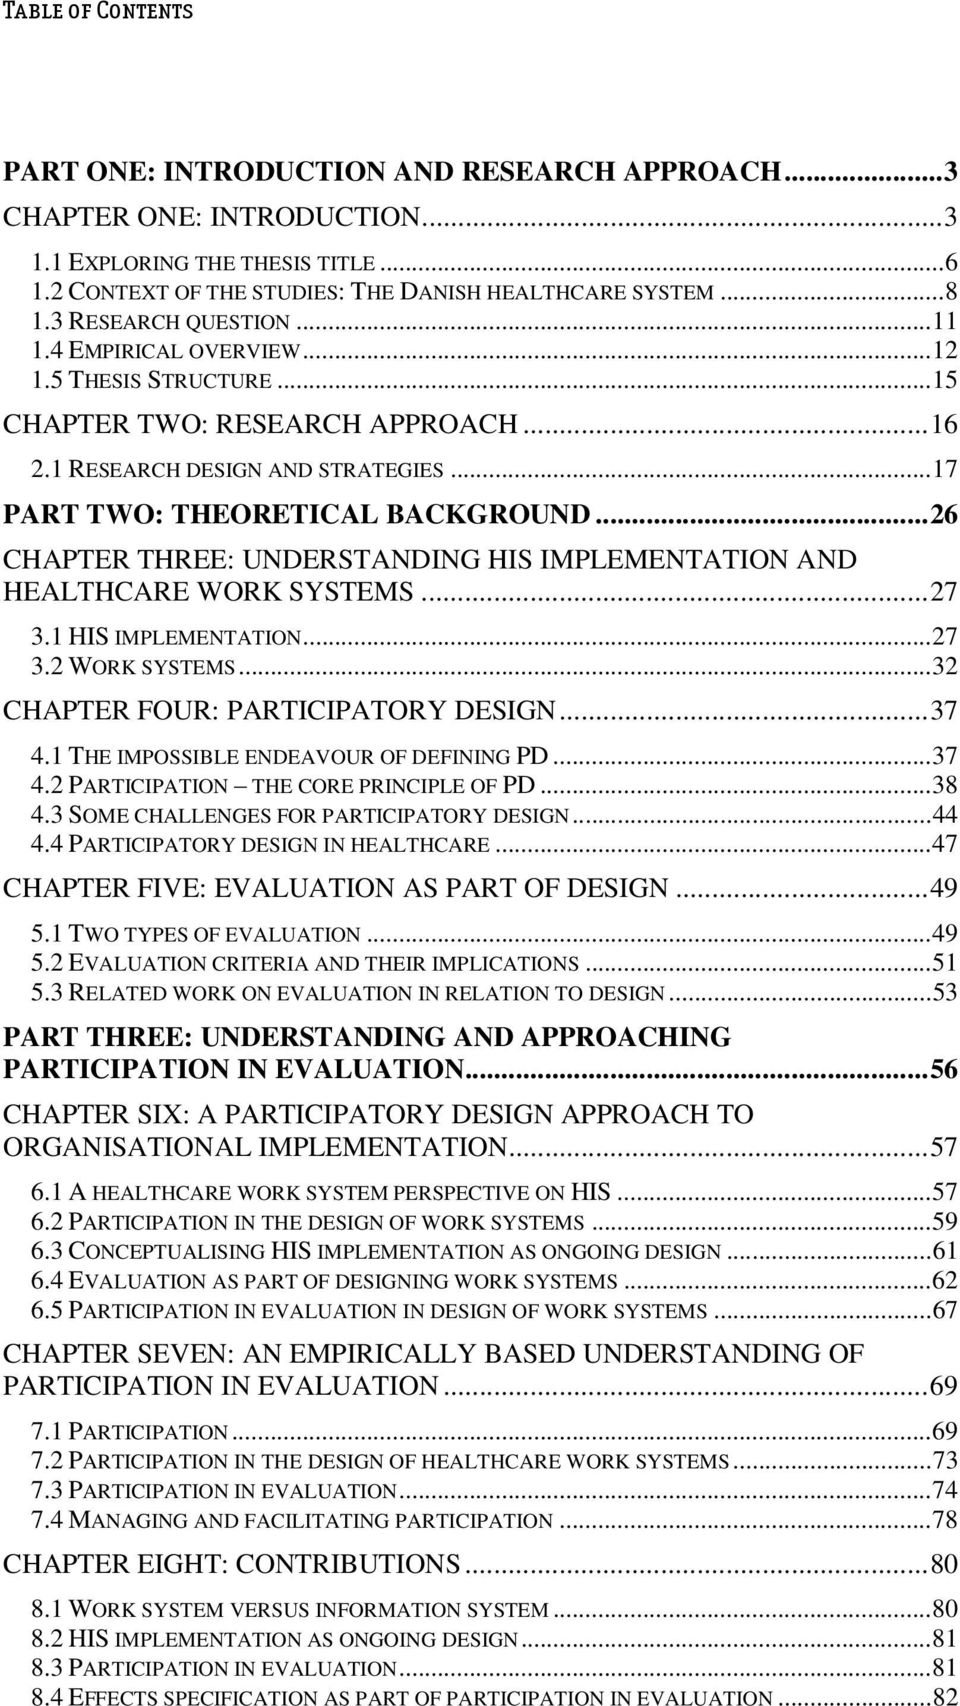 .. 26 CHAPTER THREE: UNDERSTANDING HIS IMPLEMENTATION AND HEALTHCARE WORK SYSTEMS... 27 3.1 HIS IMPLEMENTATION... 27 3.2 WORK SYSTEMS... 32 CHAPTER FOUR: PARTICIPATORY DESIGN... 37 4.